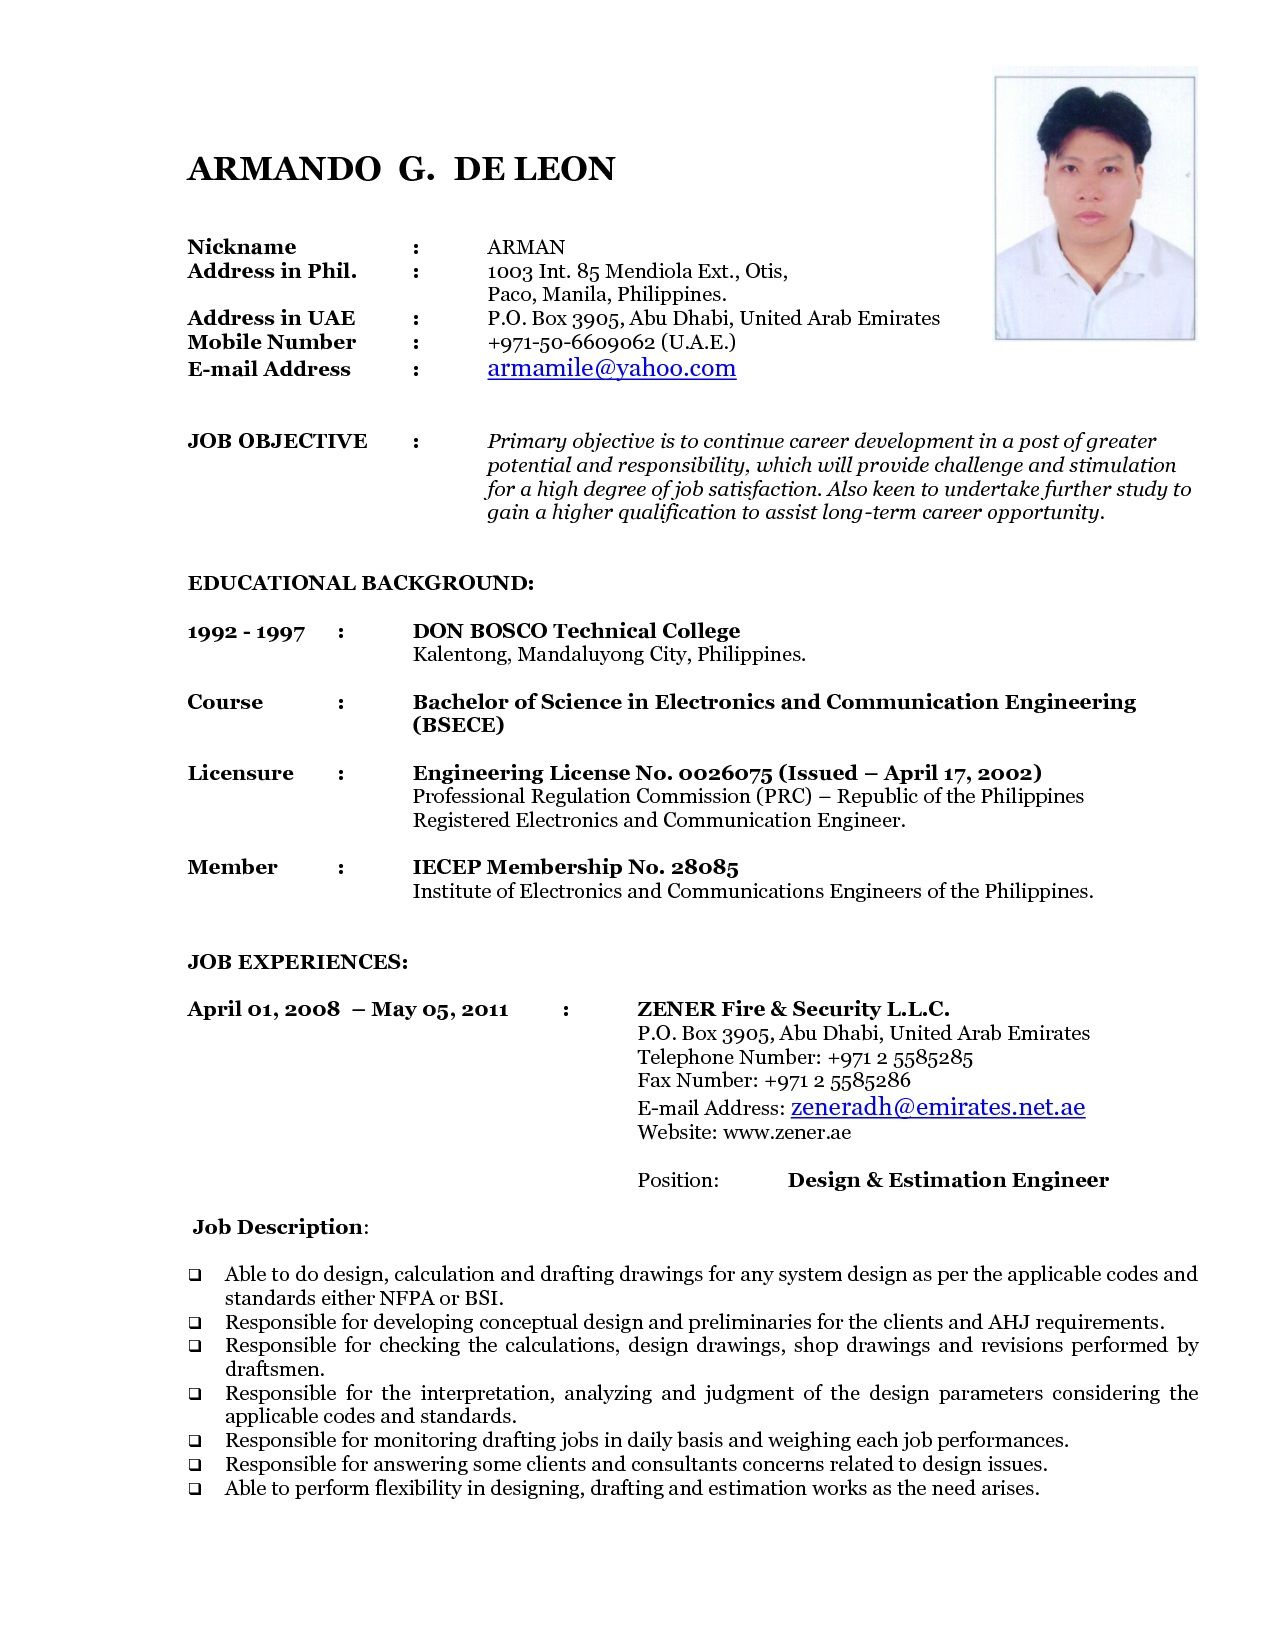 Cv Template Latest Latest resume format, Best resume